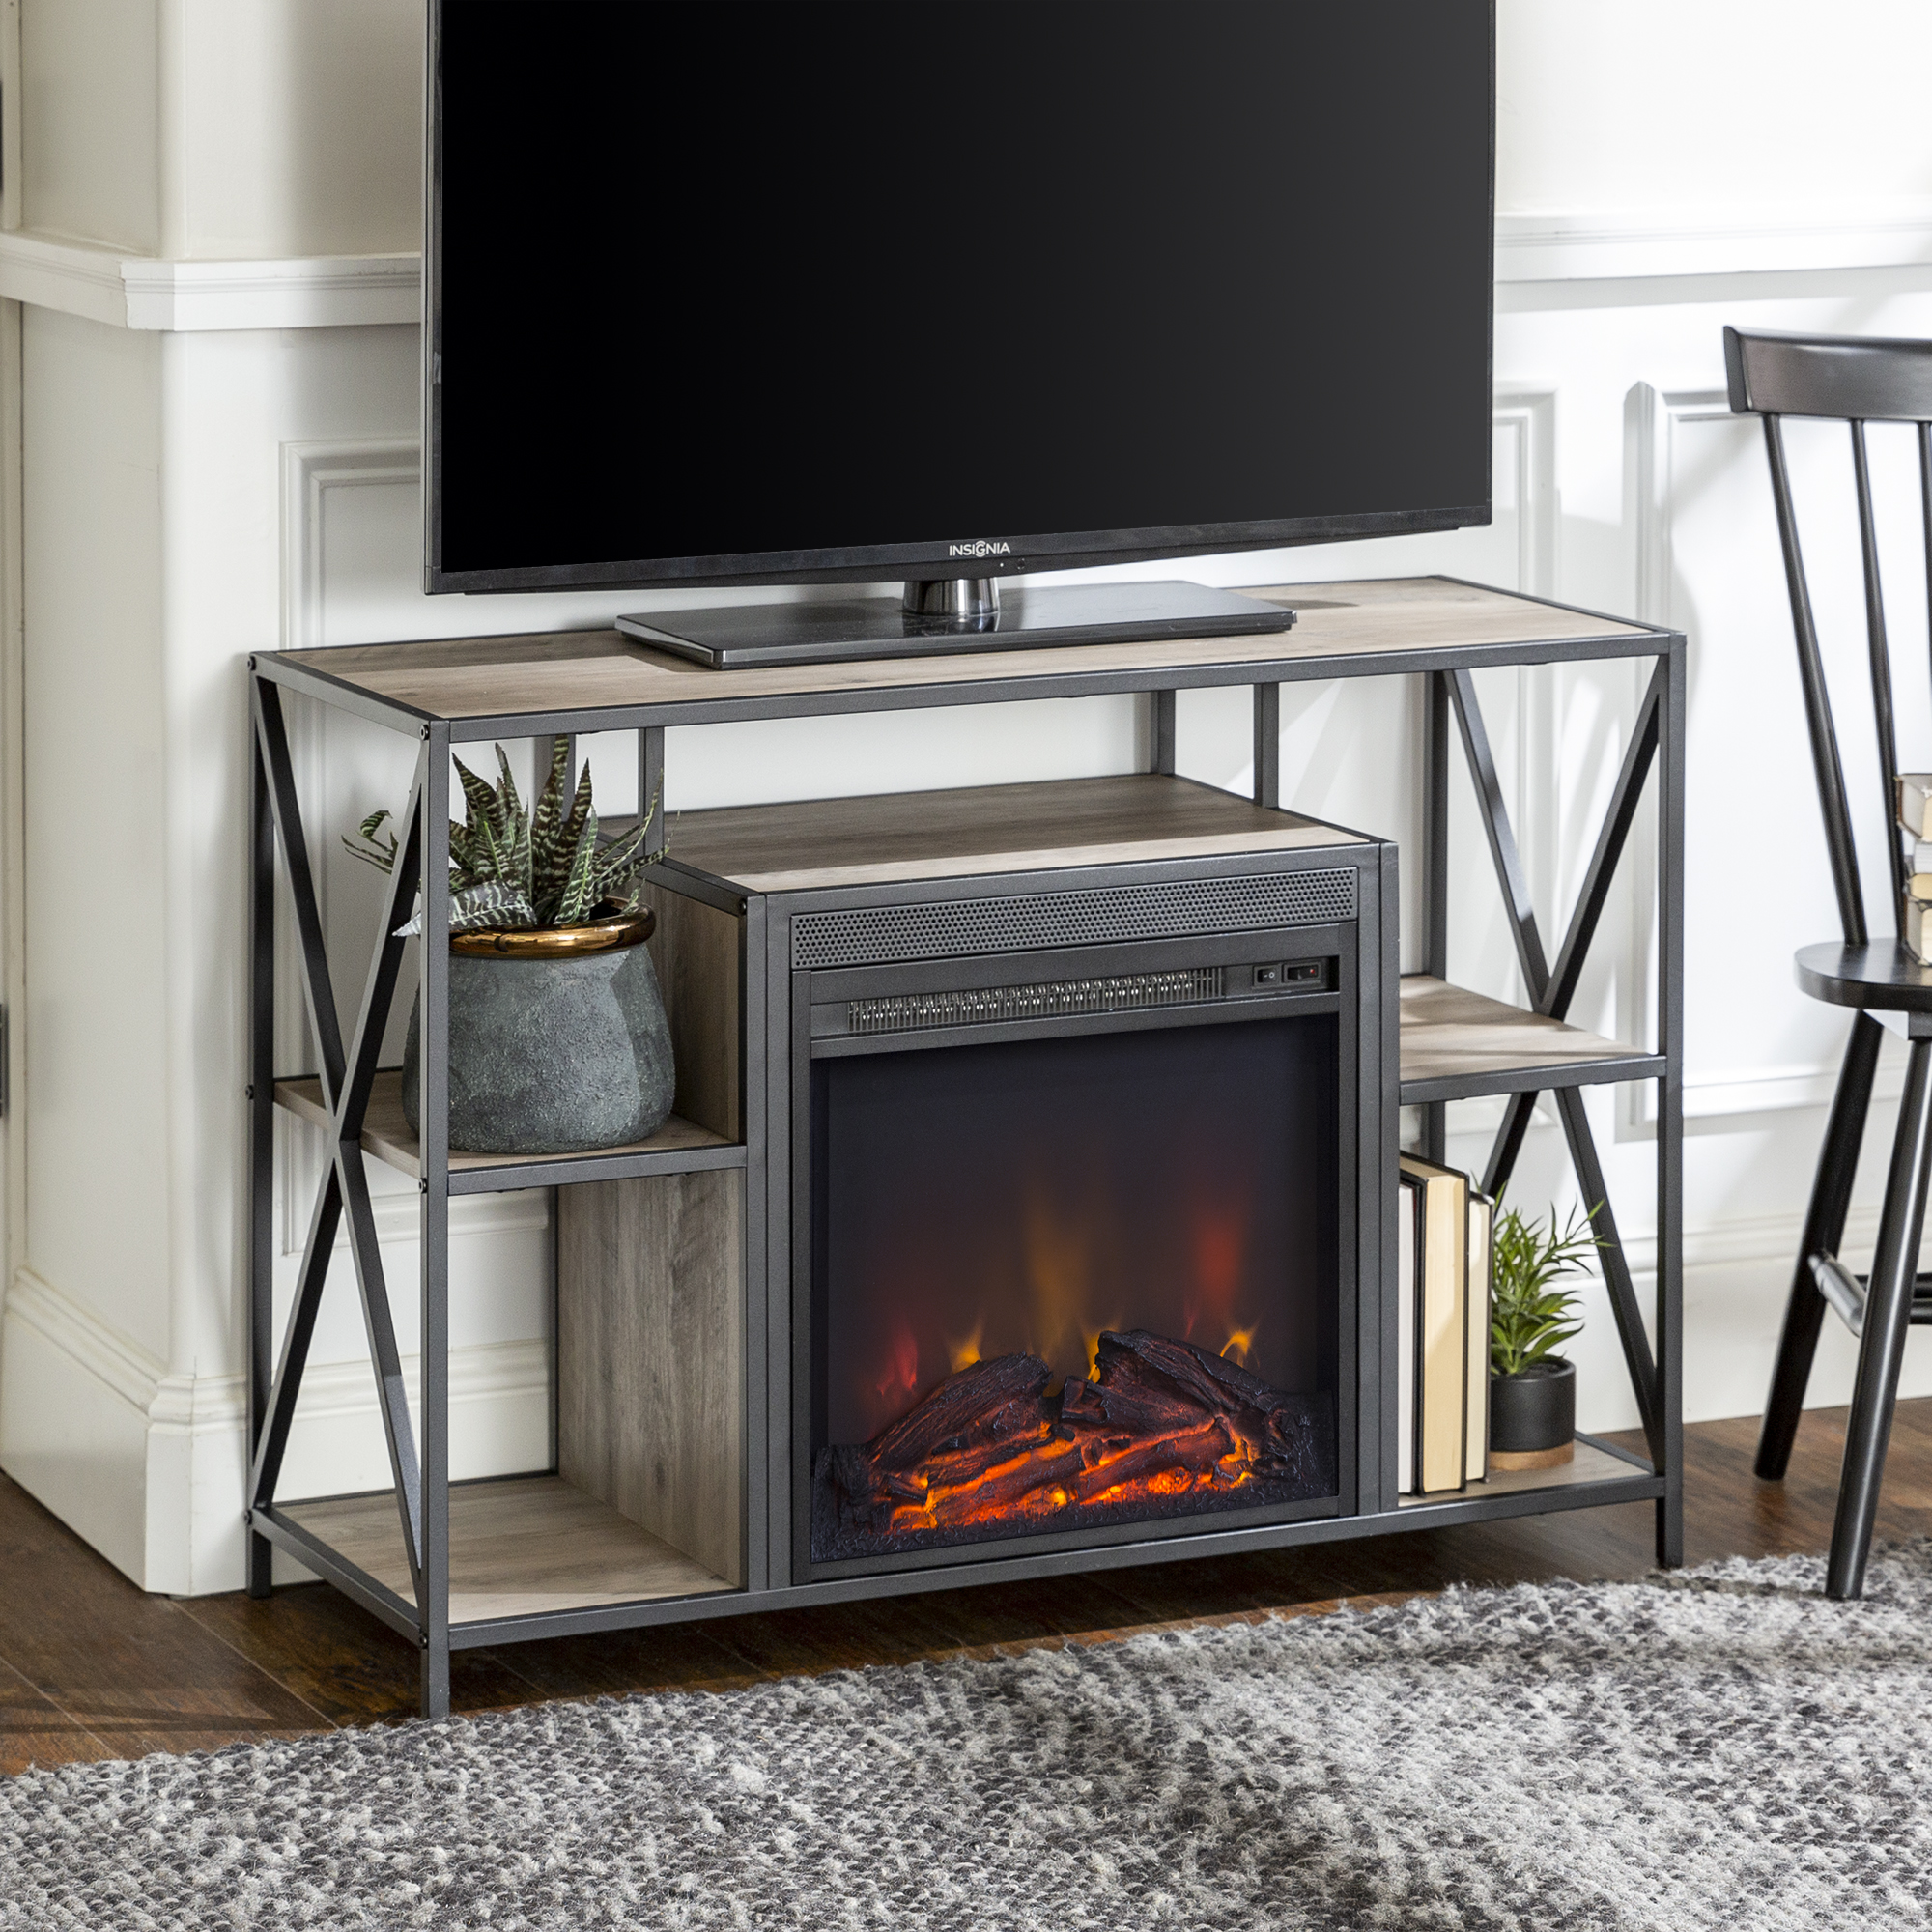 Nash Fireplace TV Stand by River Street Designs